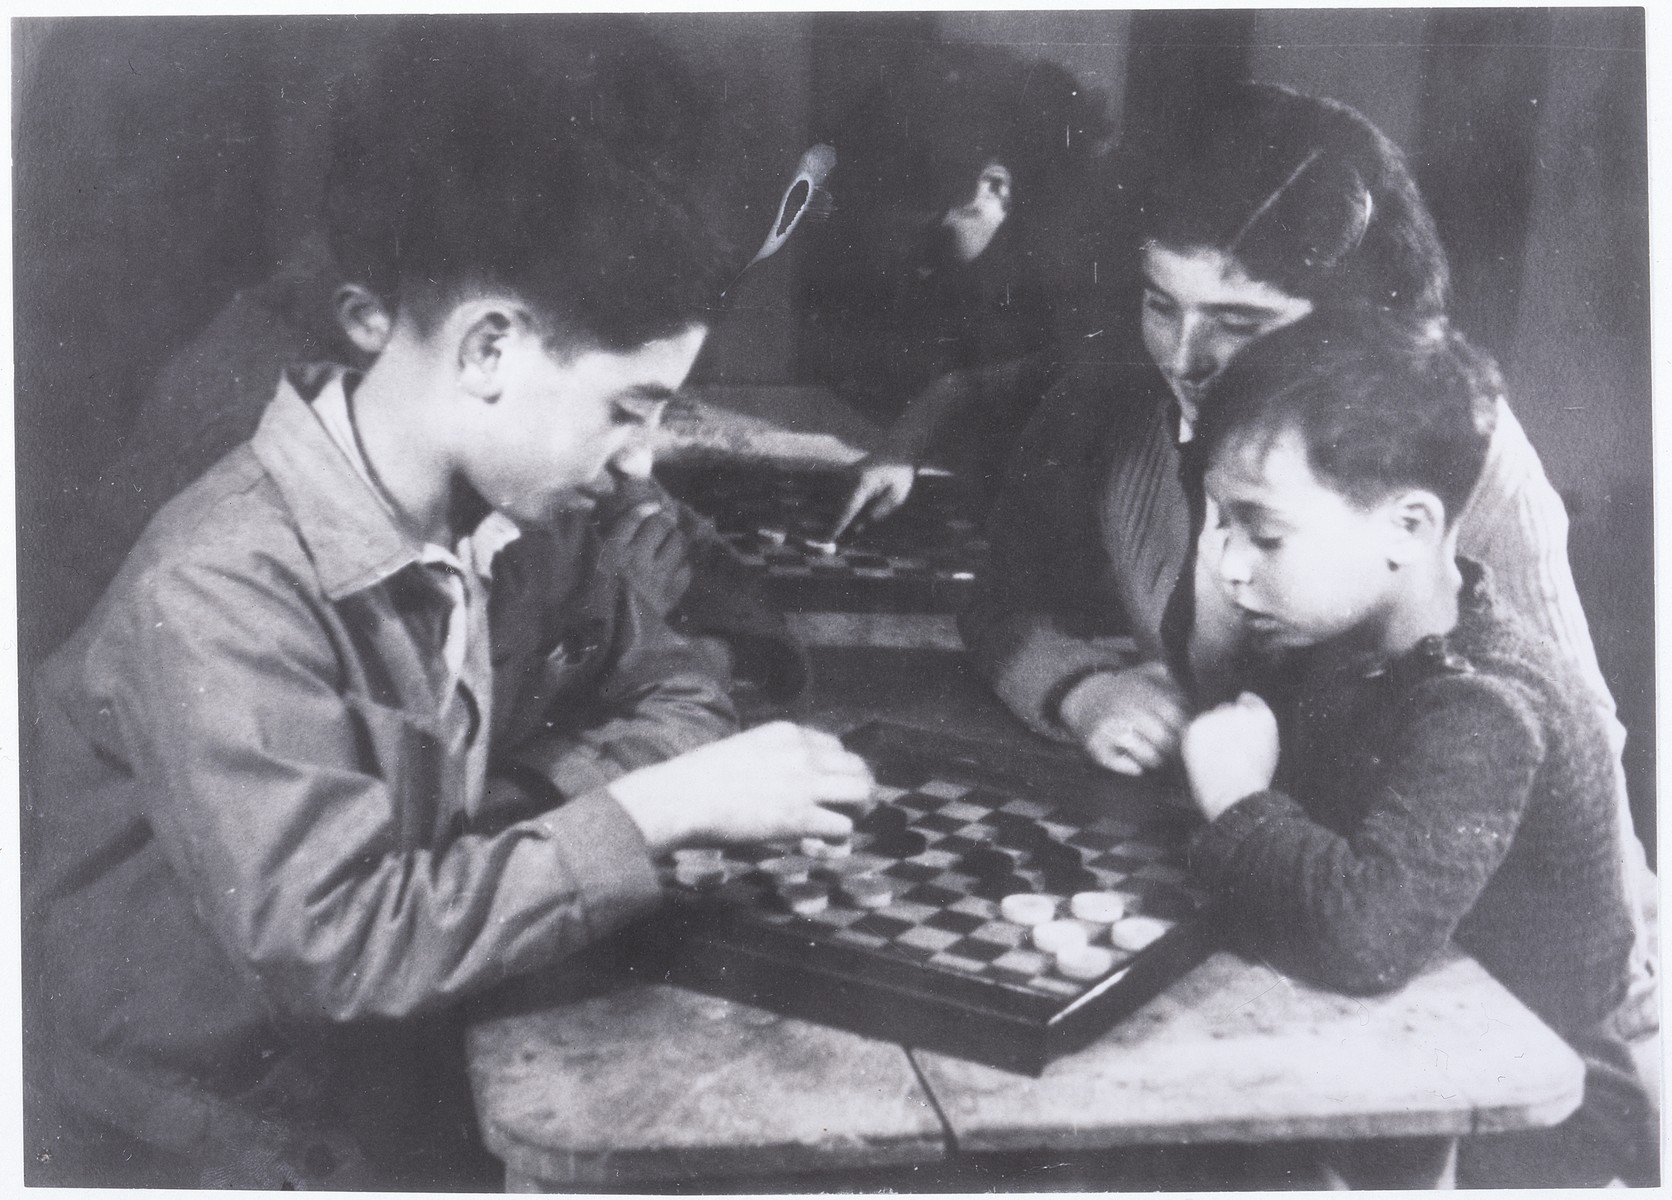 Simon and Michel Jeruchim play checkers in the home Cailly-sur-Eure near Evreux, Normandy, France.